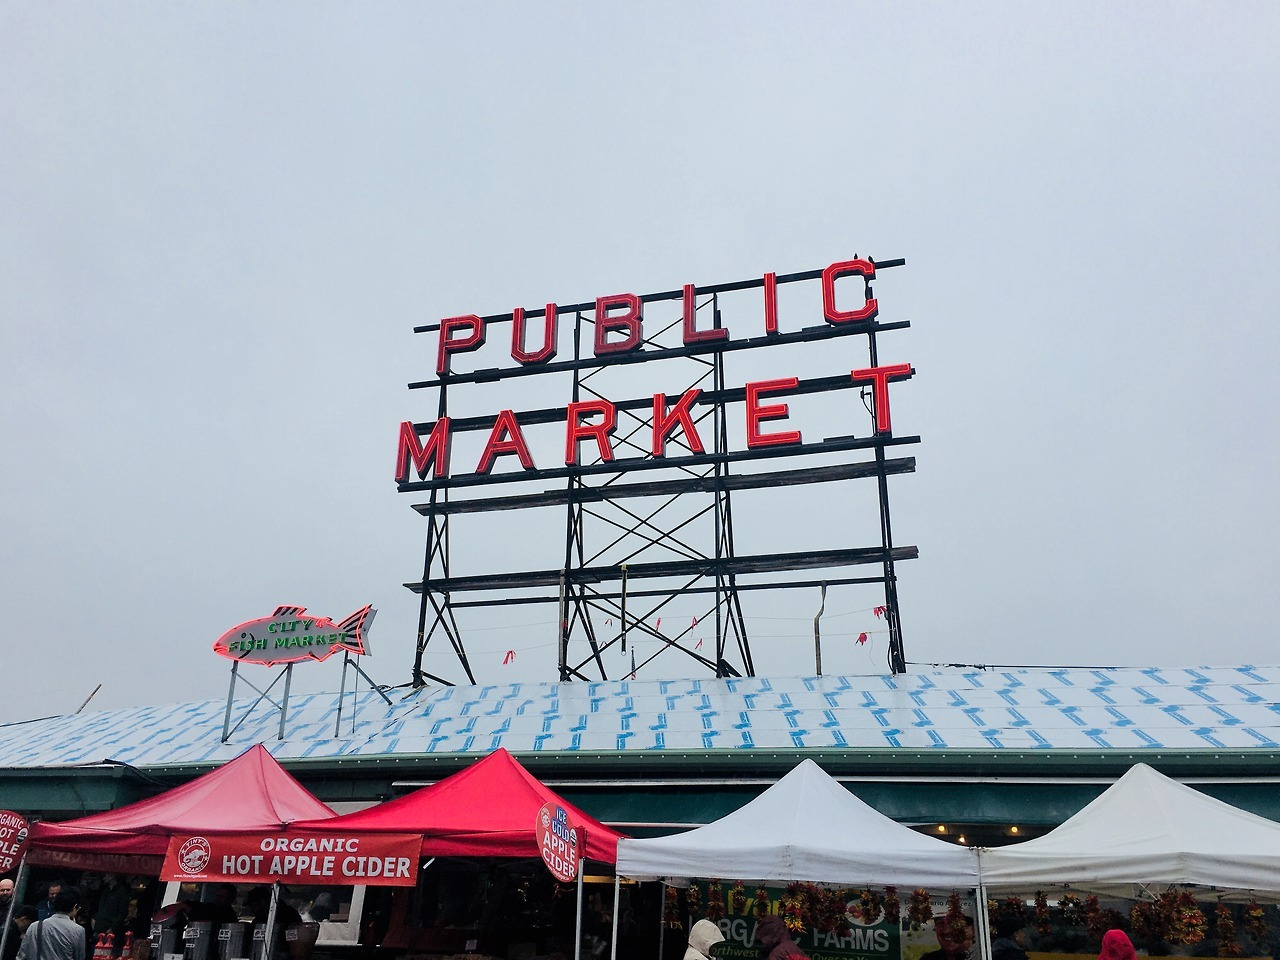 The first building, the Main Arcade, of Pike Place Market in Seattle opened today in 1907, 110 years ago!  We love sending travelers to the Pacific Northwest for the beautiful cities, lush landscapes + fascinating history!  Sign up today and redefine how you travel the country:   http://bit.ly/PikePlace_2017